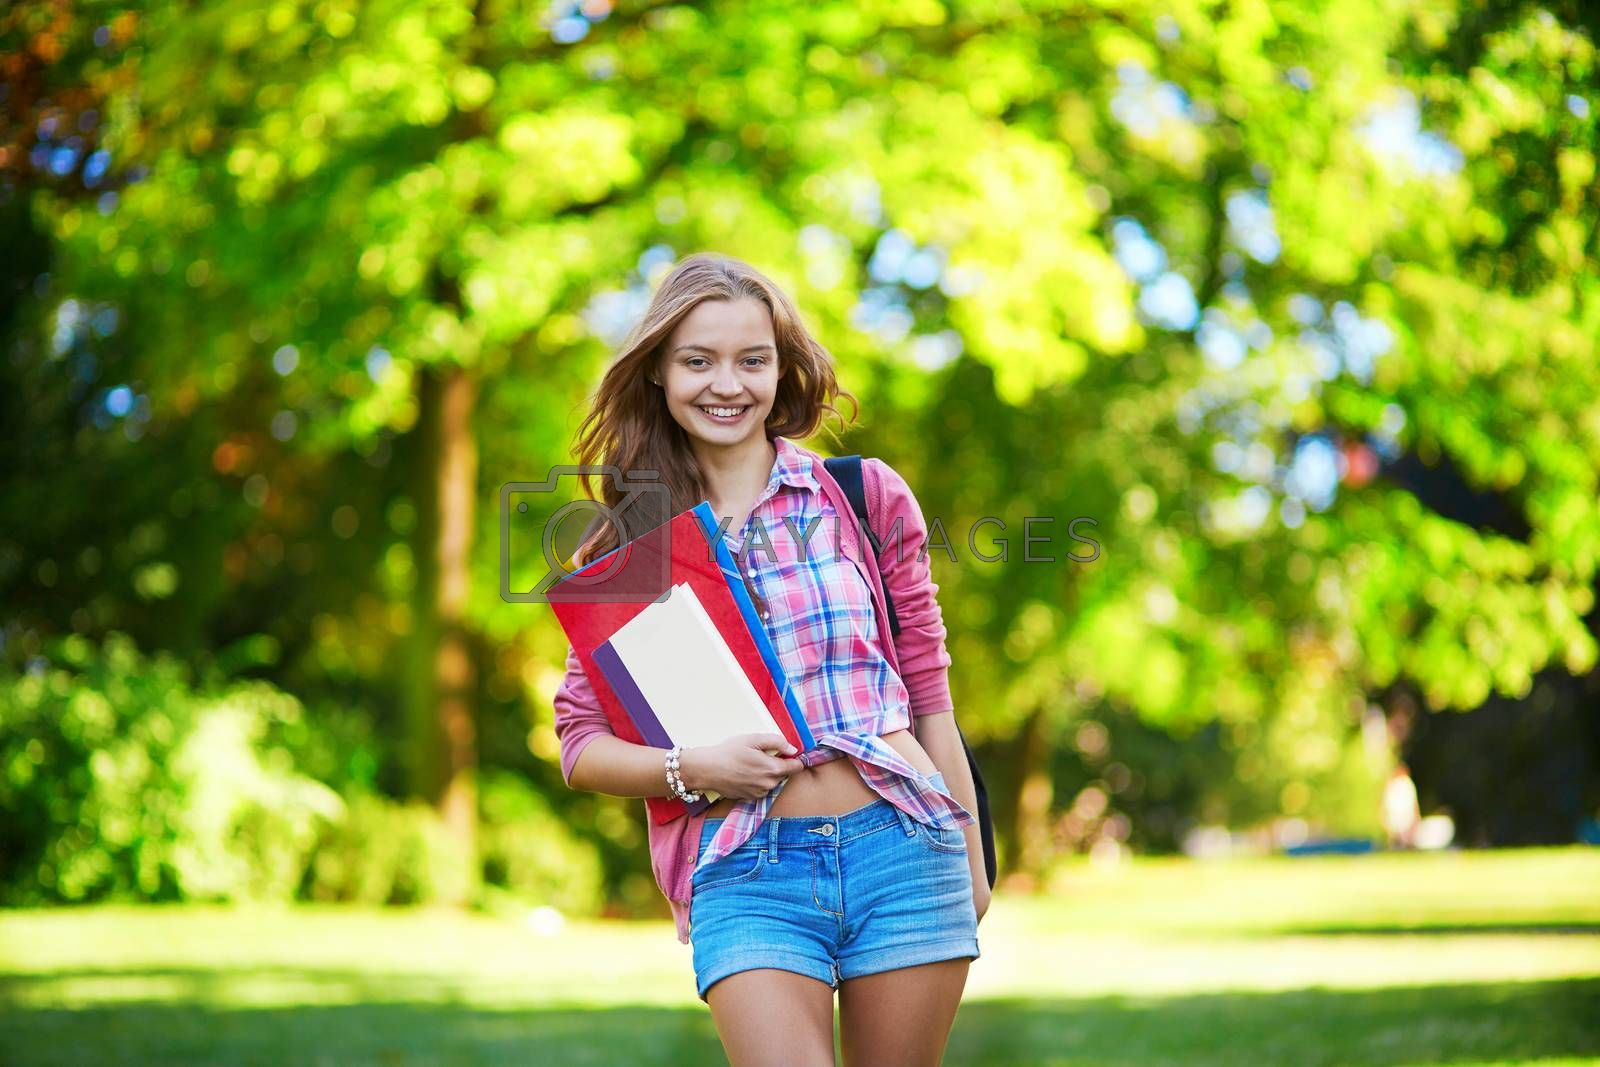 Young student girl outdoors going back to school and smiling